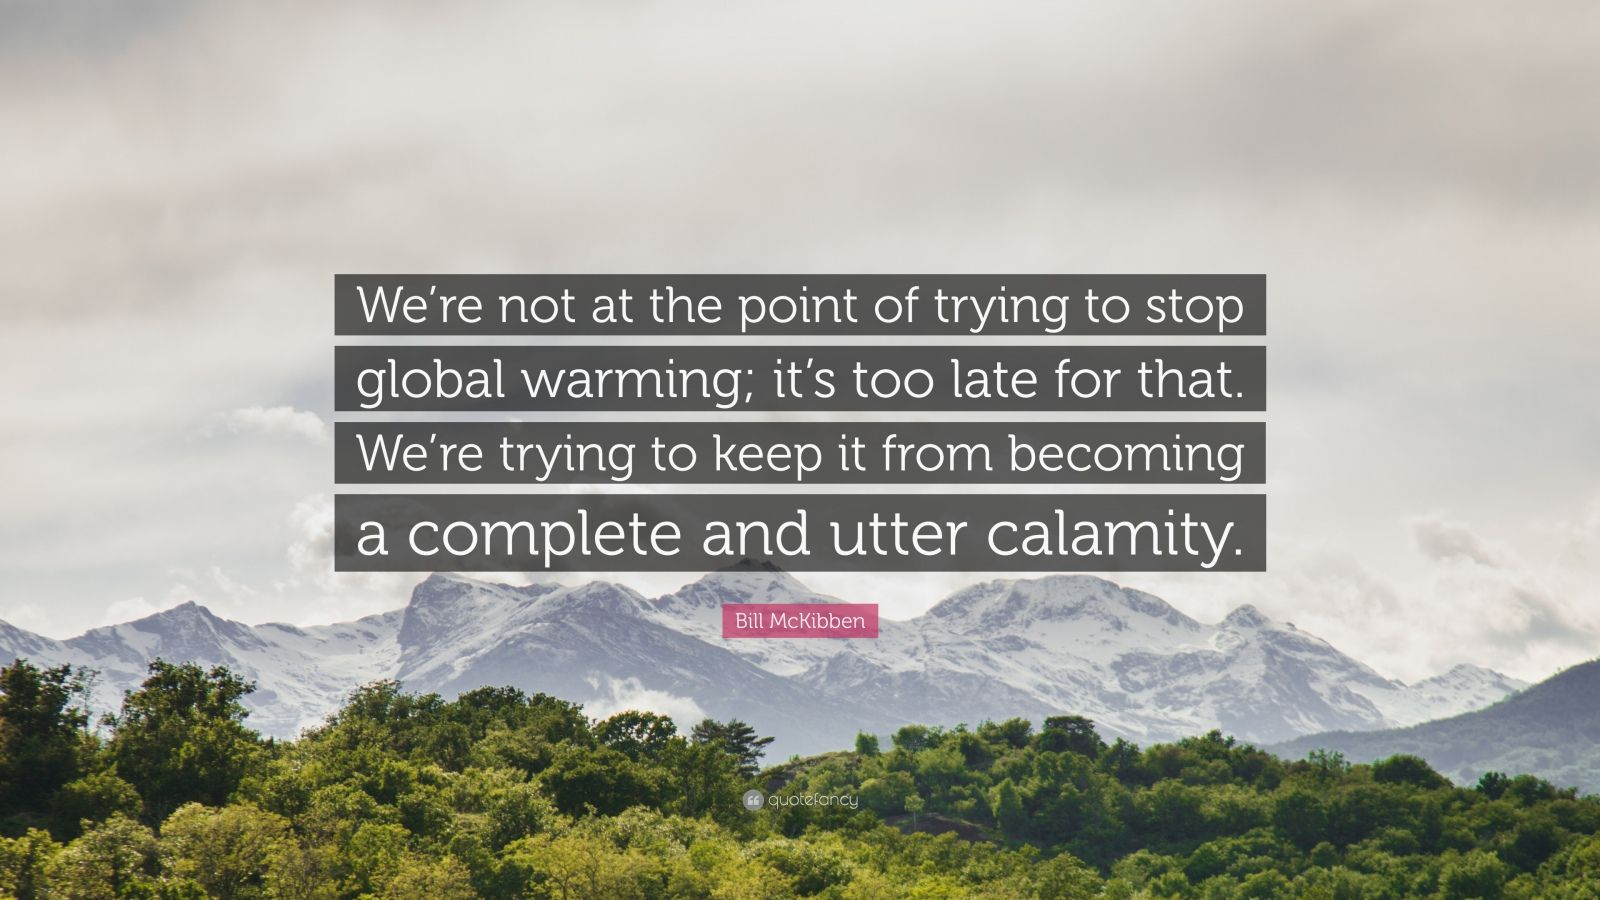 """Bill McKibben Quote: """"We're not at the point of trying to stop global warming; it's too late for that. We're trying to keep it from becoming a complete and utter calamity."""""""